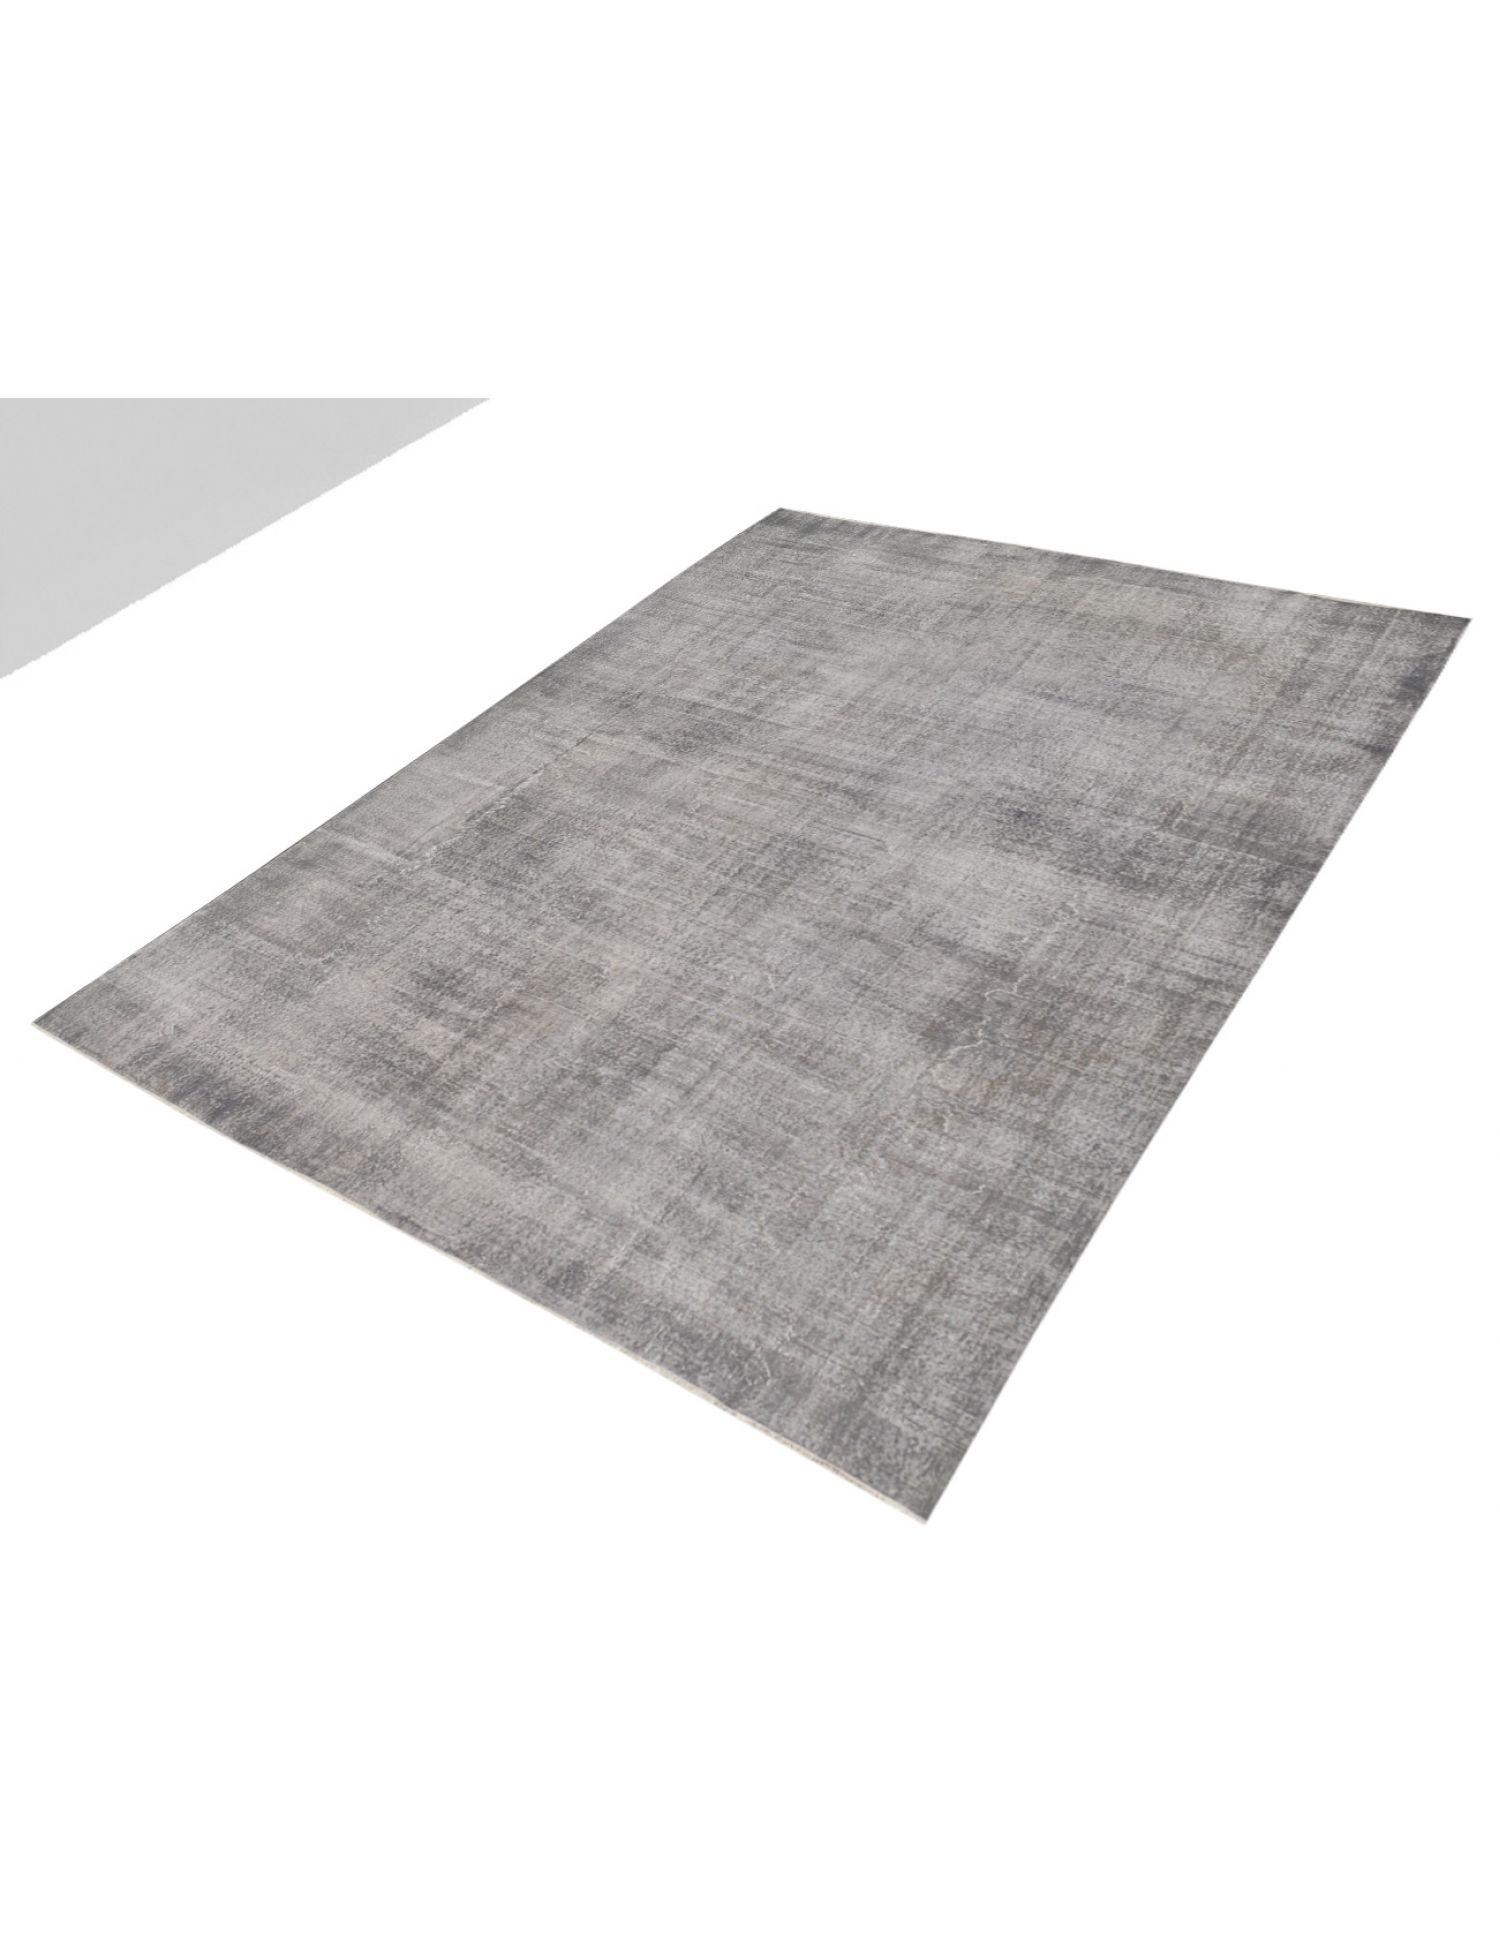 Vintage Carpet  grey <br/>348 x 281 cm